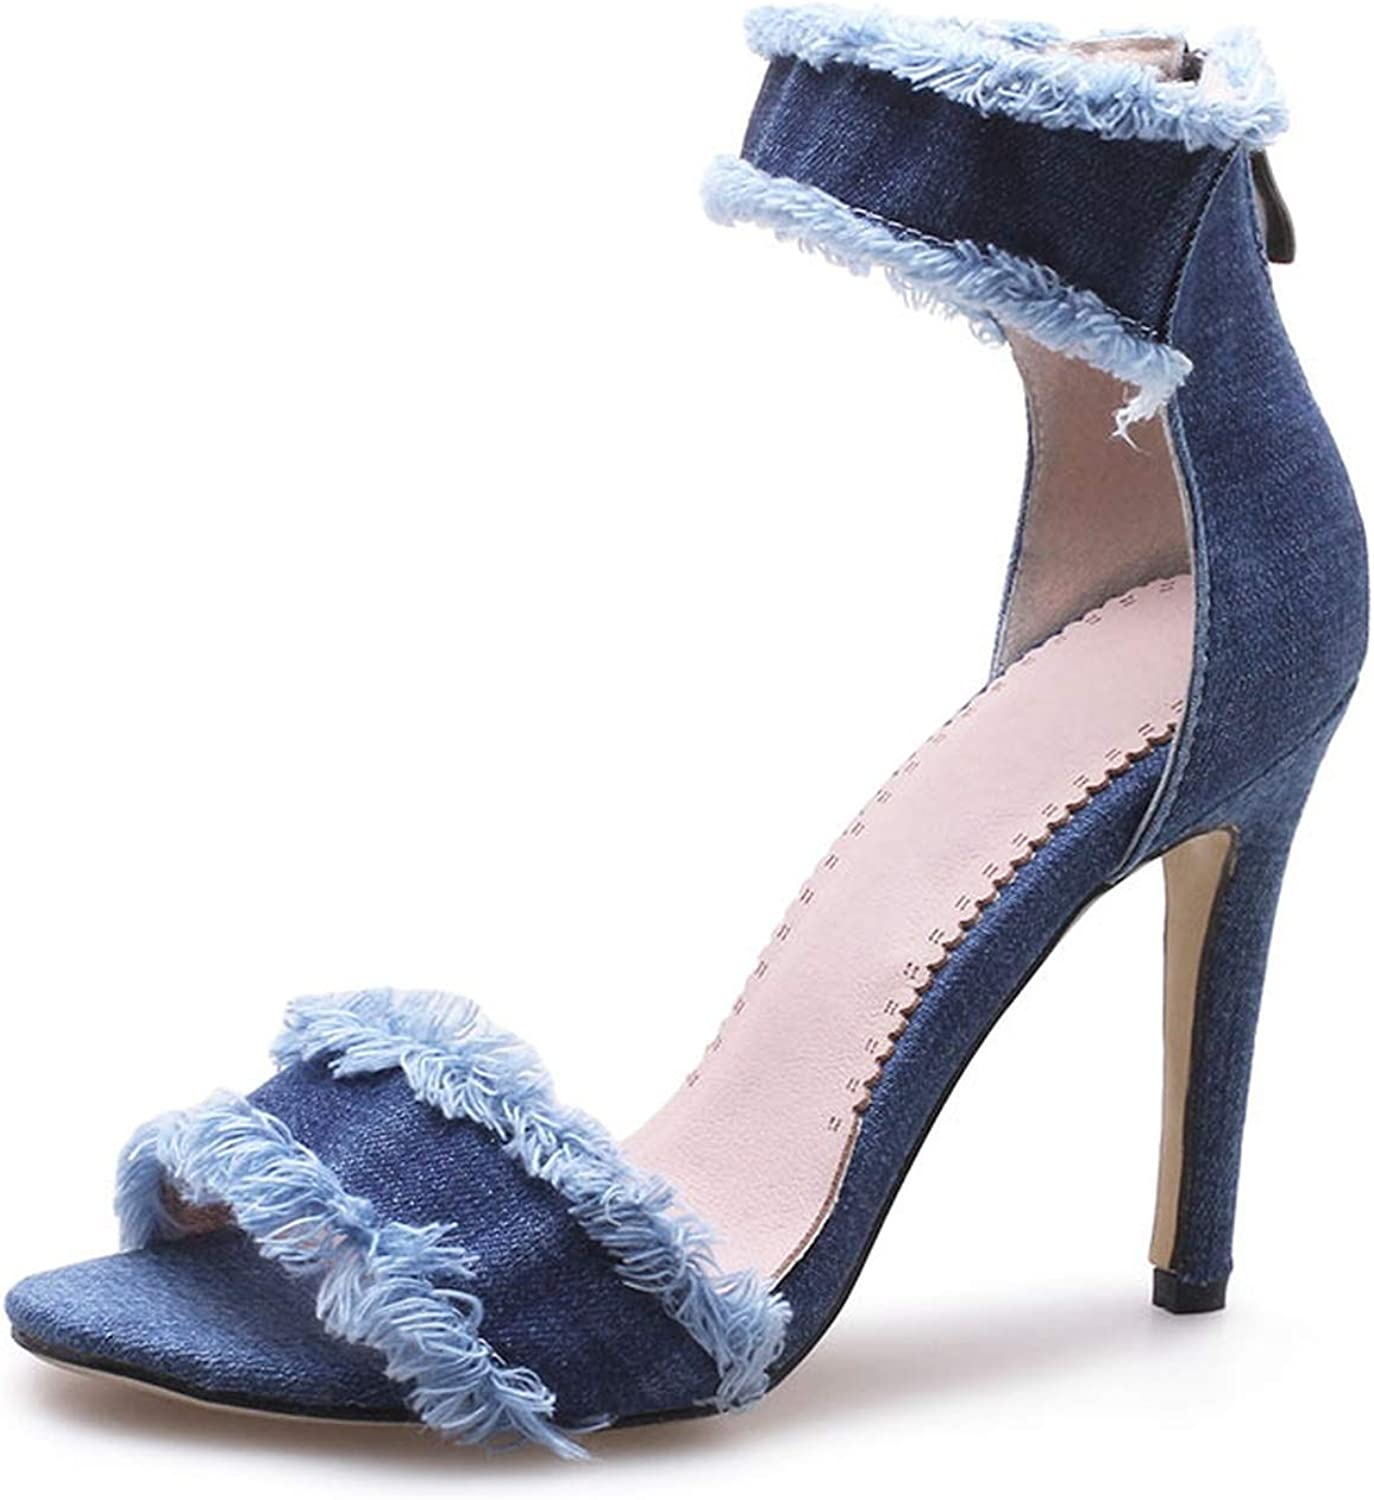 Small Basketball Sexy Fringe Women Sandals Fashion Denim shoes Ankle Strap Thin High Heels Round Toe Women Sandals